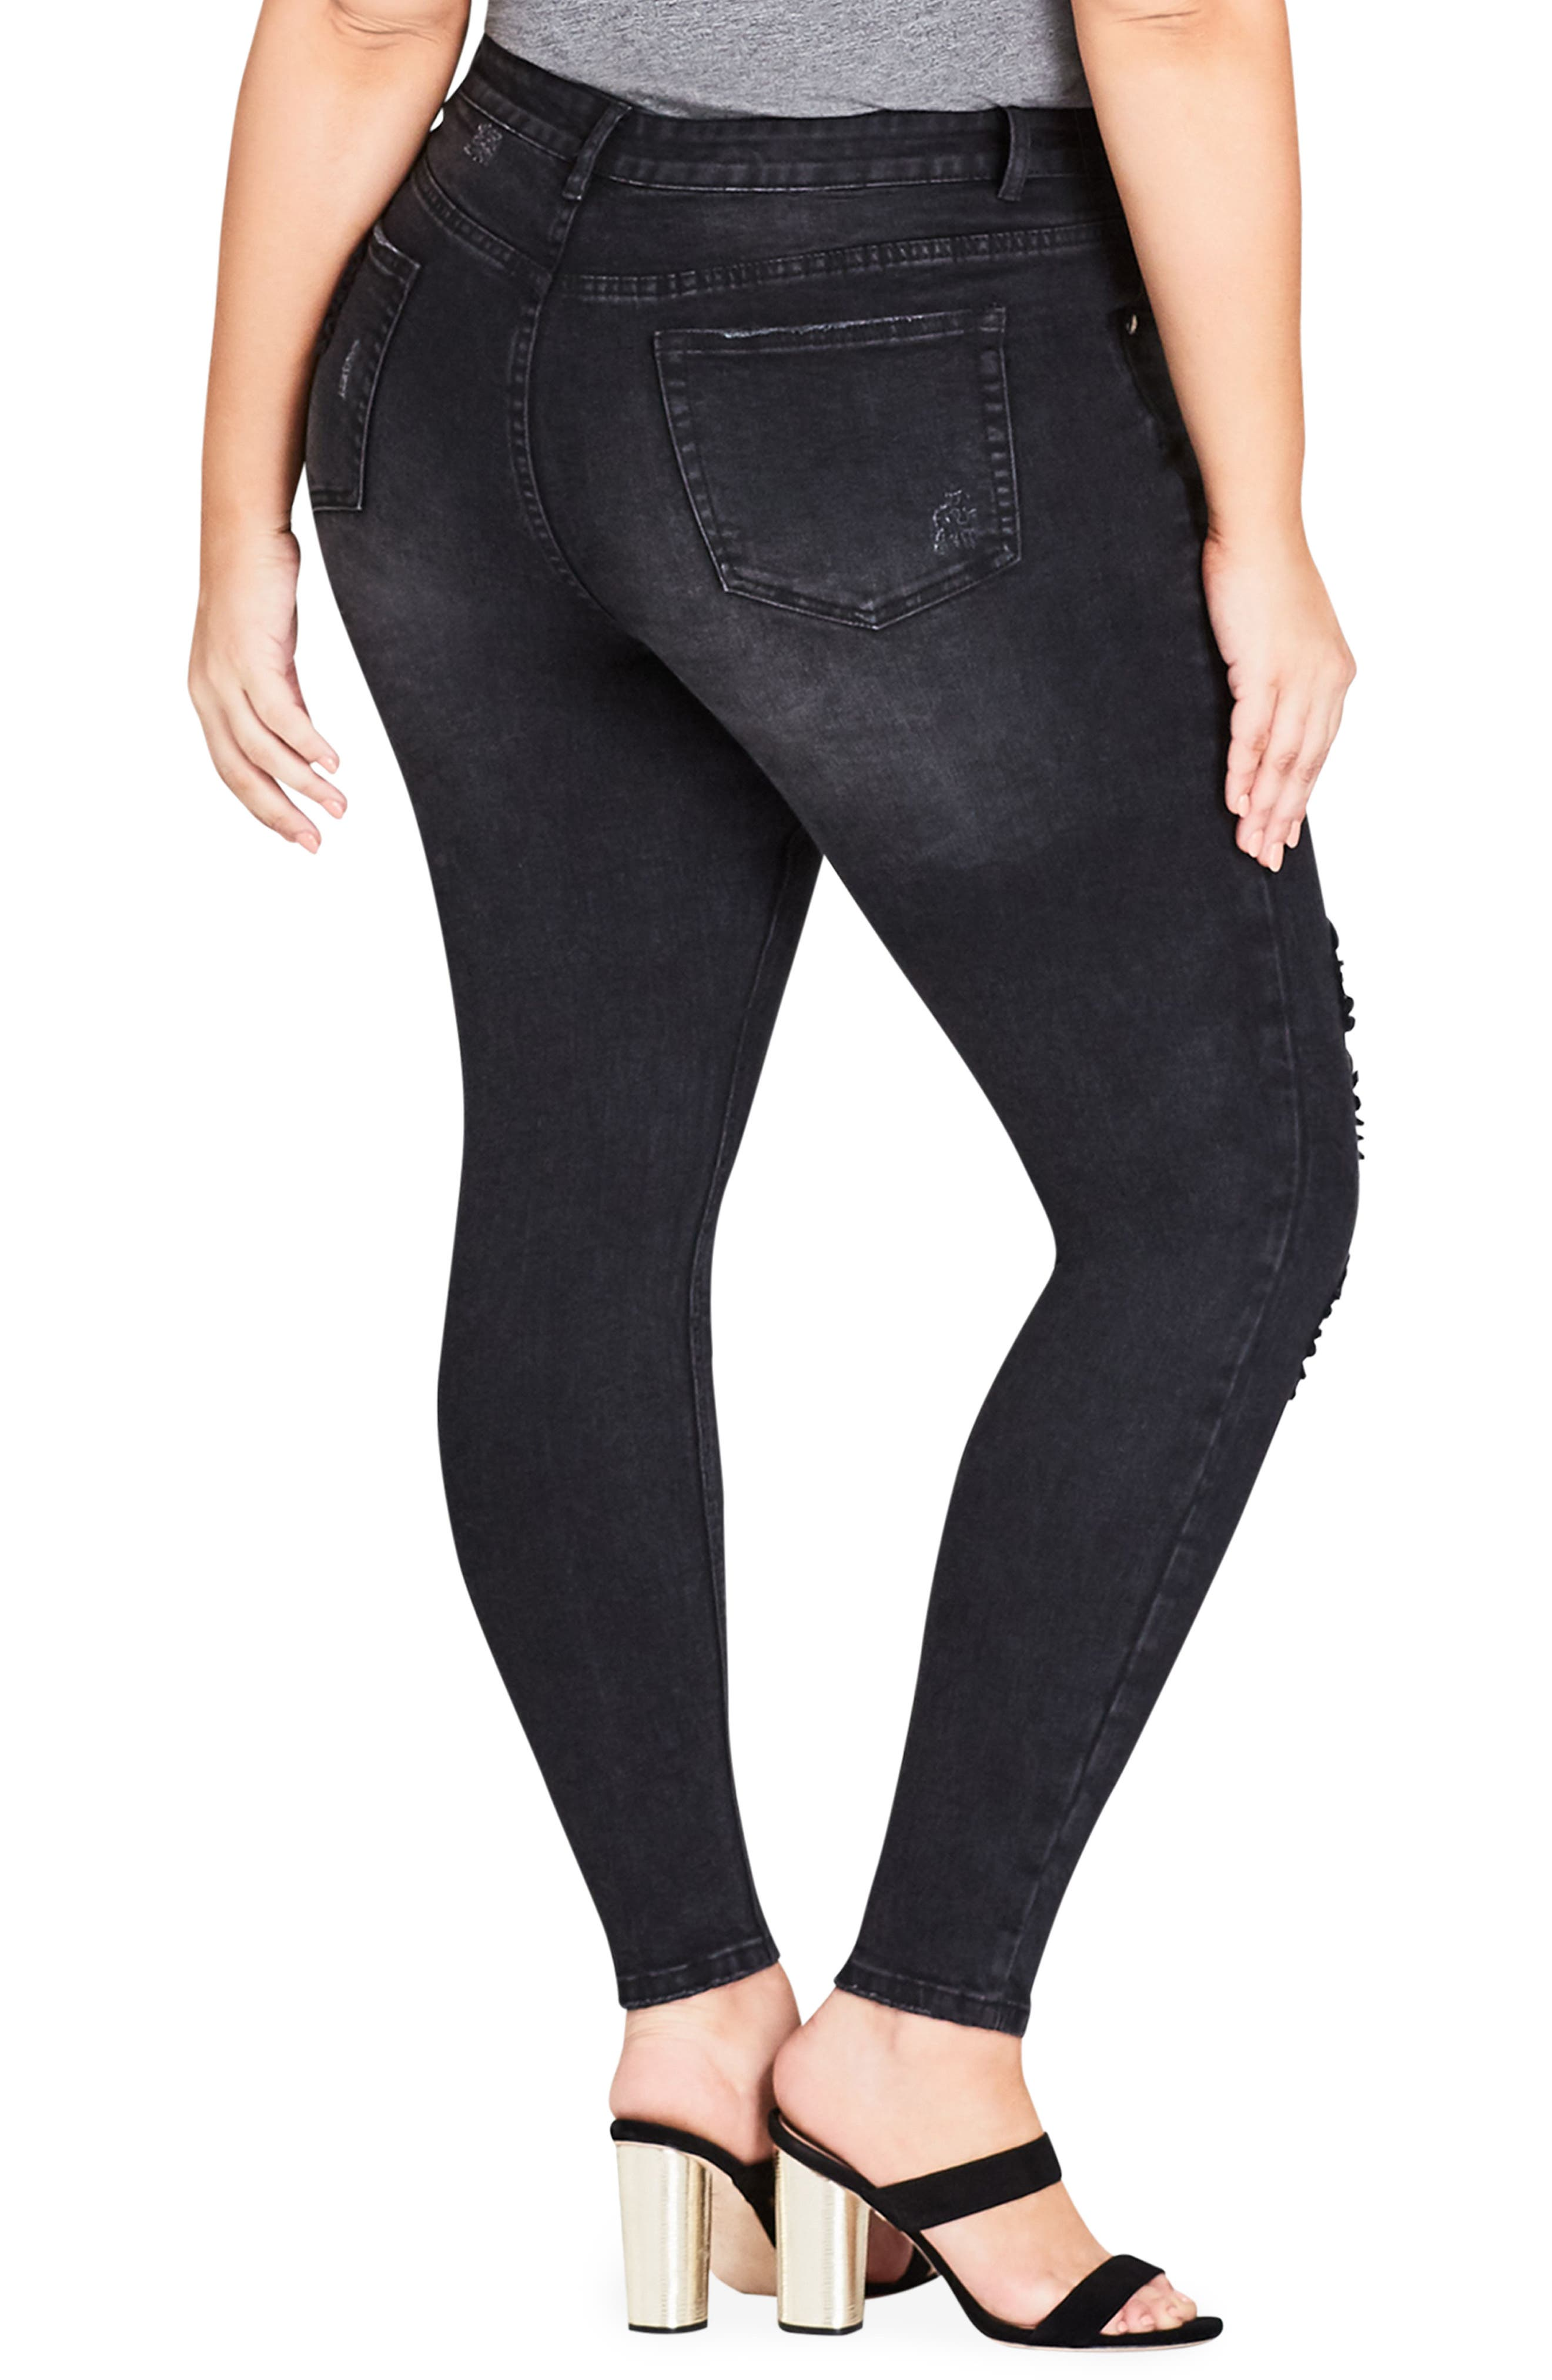 CITY CHIC,                             Fishnet Ripped Skinny Jeans,                             Alternate thumbnail 2, color,                             001